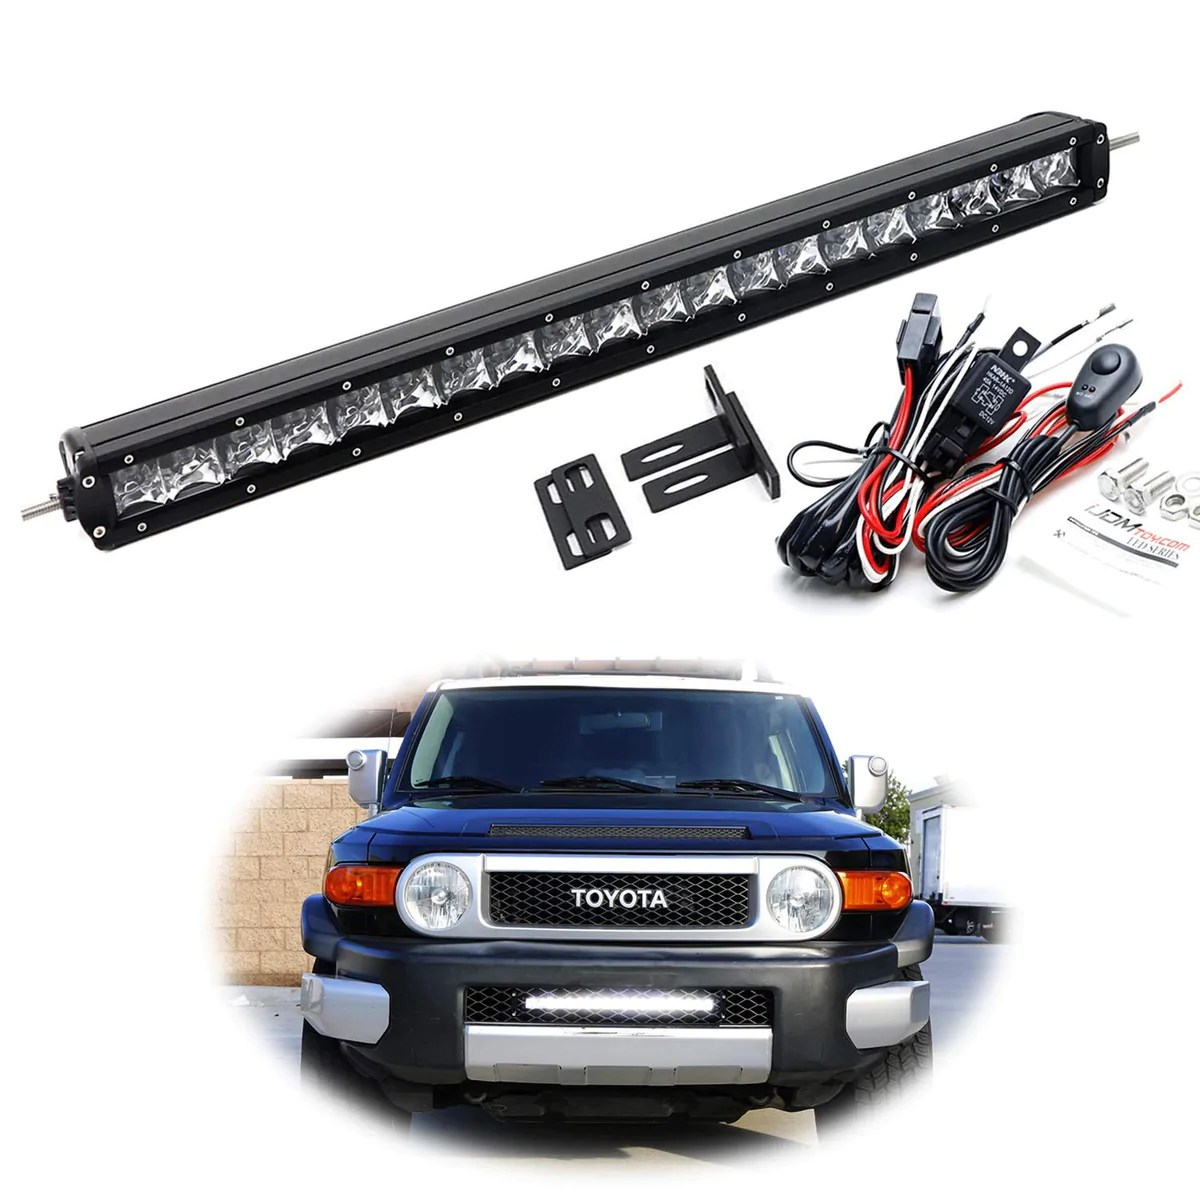 small resolution of  20 led light bar kit for 2007 14 toyota fj cruiser includes 1 100w high power cree led lightbar mesh mounting brackets on off switch wiring kit